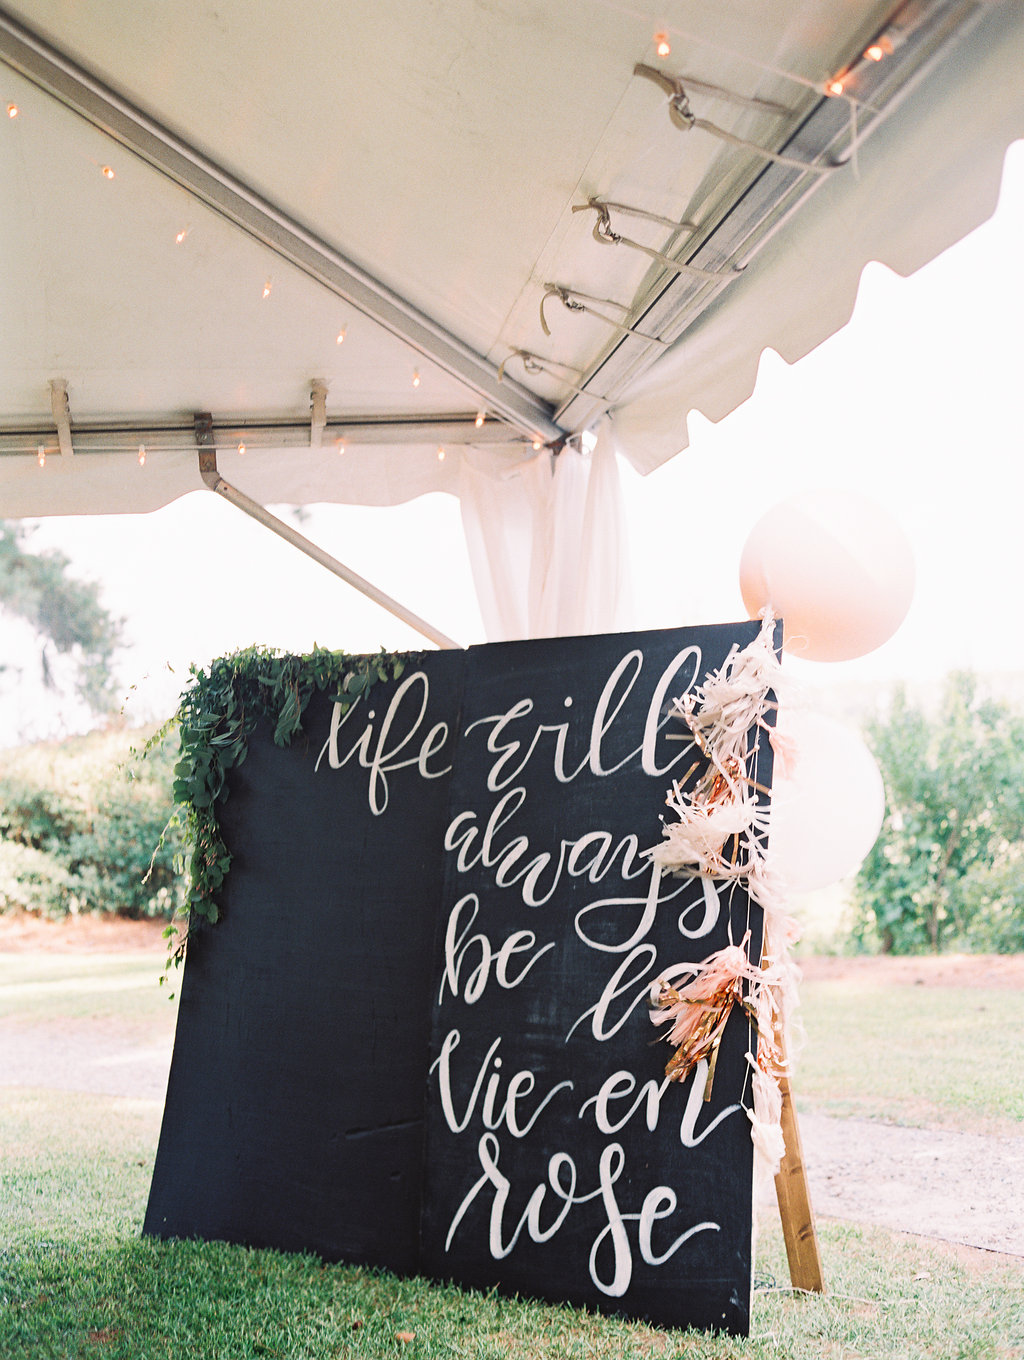 Custom photo booth wall by J. Lily Design at Oldfield Club wedding  Craft beer station at Oldfield Club wedding  //  HIlton Head photographs by Landon Jacobs  //  A Lowcountry Wedding Magazine